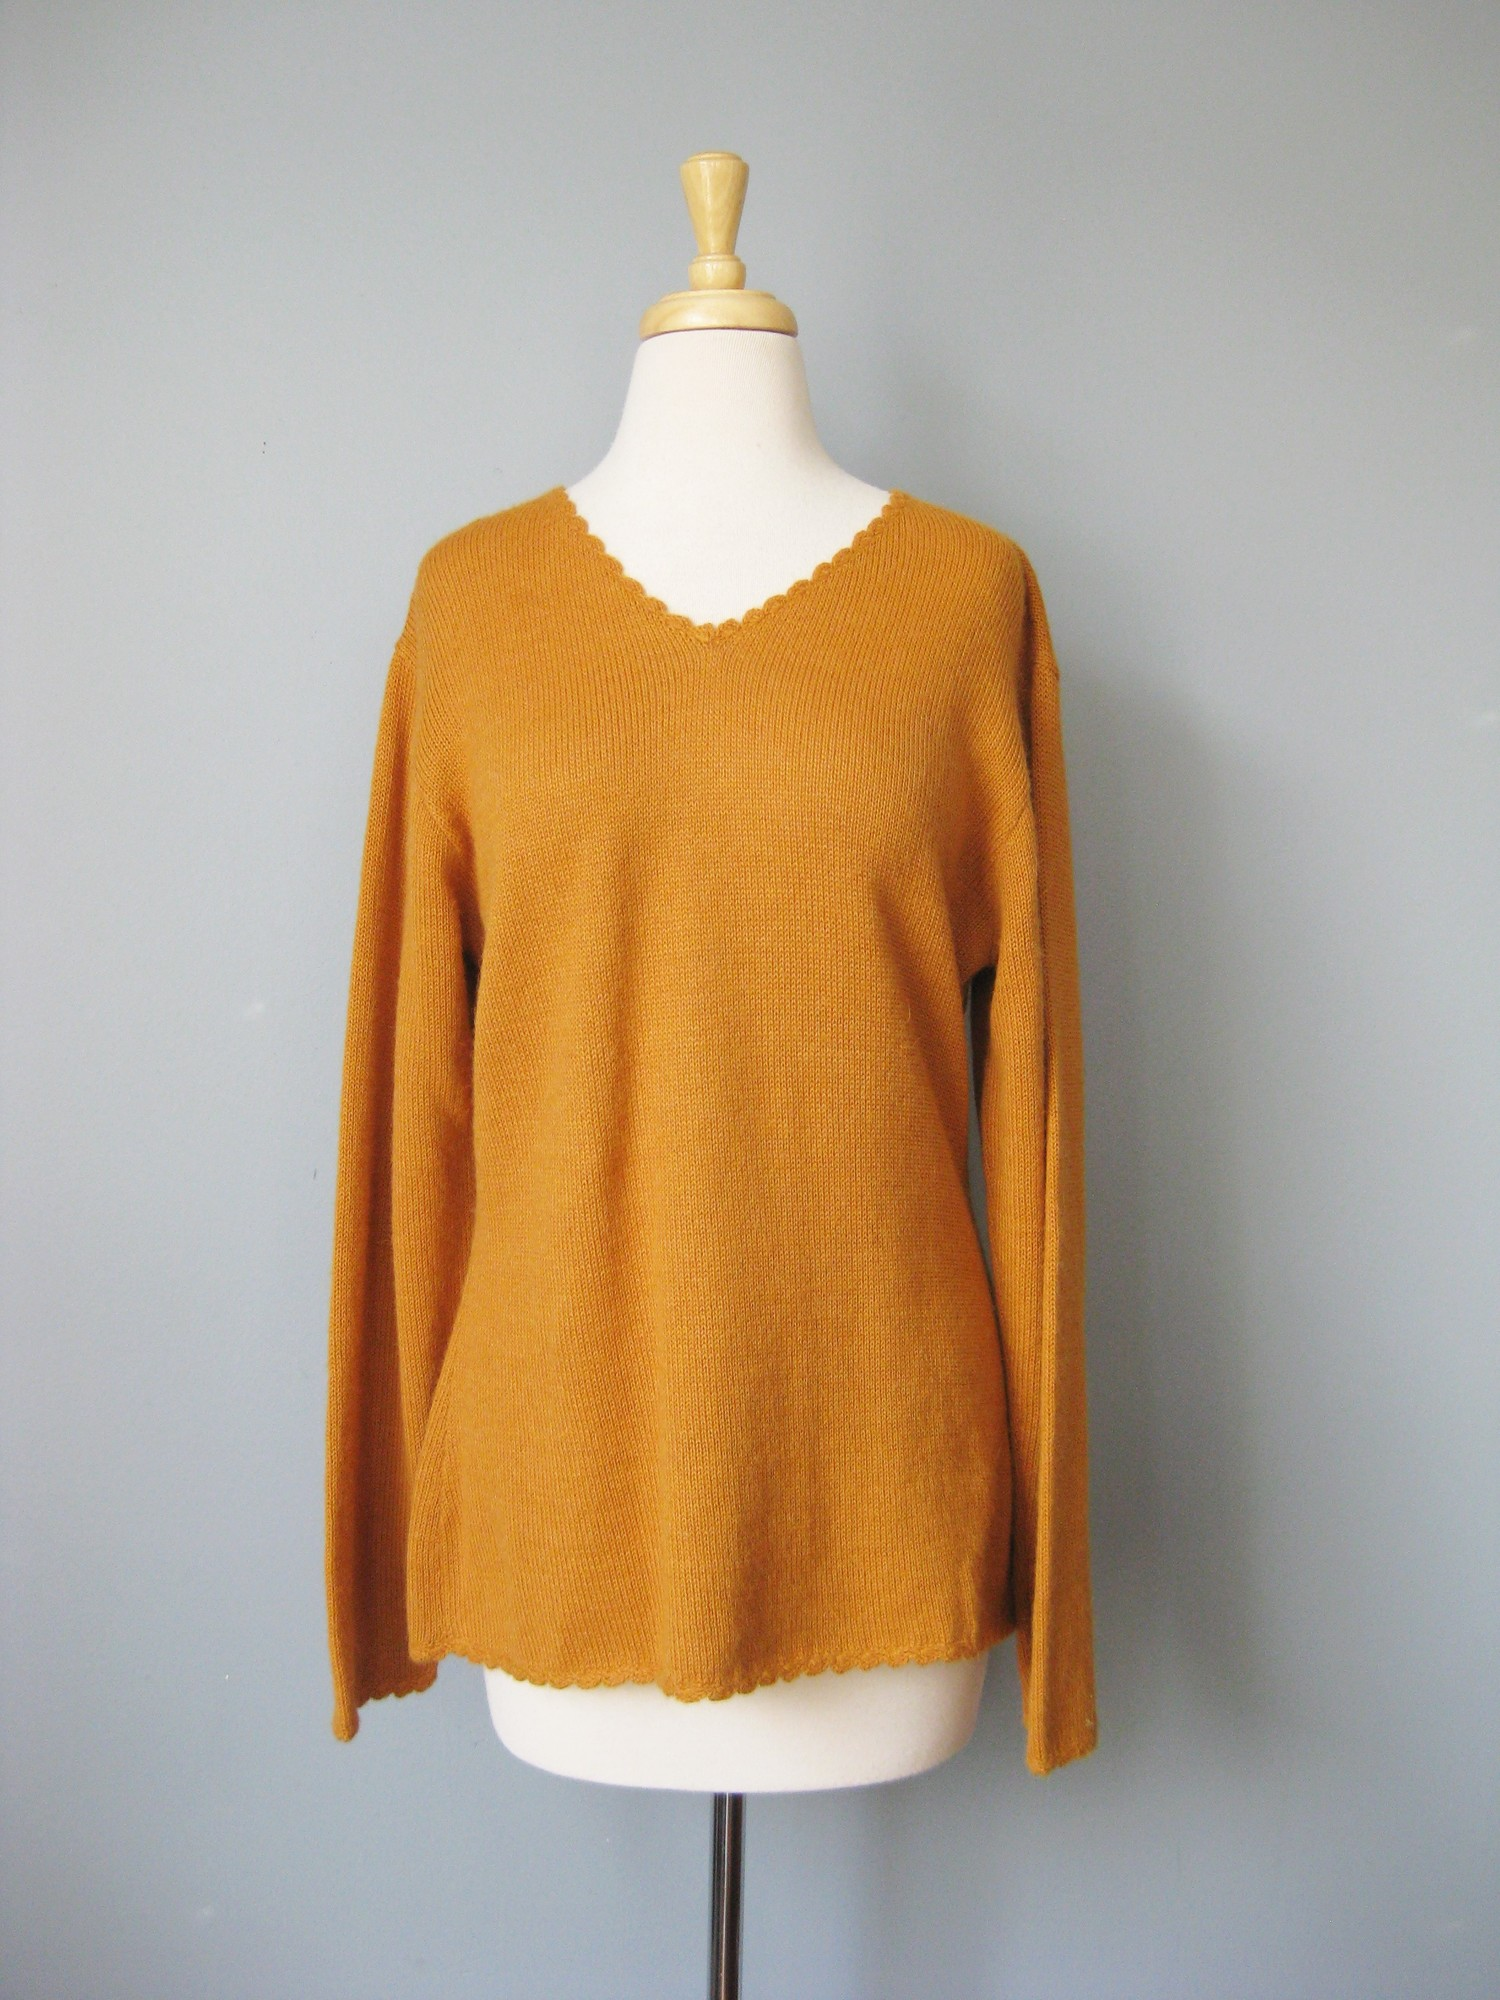 Peruvian Link Alpaca, Orange, Size: Medium<br /> Golden Pumpkin color with High quality layering piece in a heavenly cool toned pink color<br /> Pretty scallop details at wrist and neckline<br /> <br /> Size M<br /> armpit to armpit: 21.5in<br /> length: 25in<br /> width at hemin: 20.75in<br /> <br /> thanks for looking!<br /> #36858